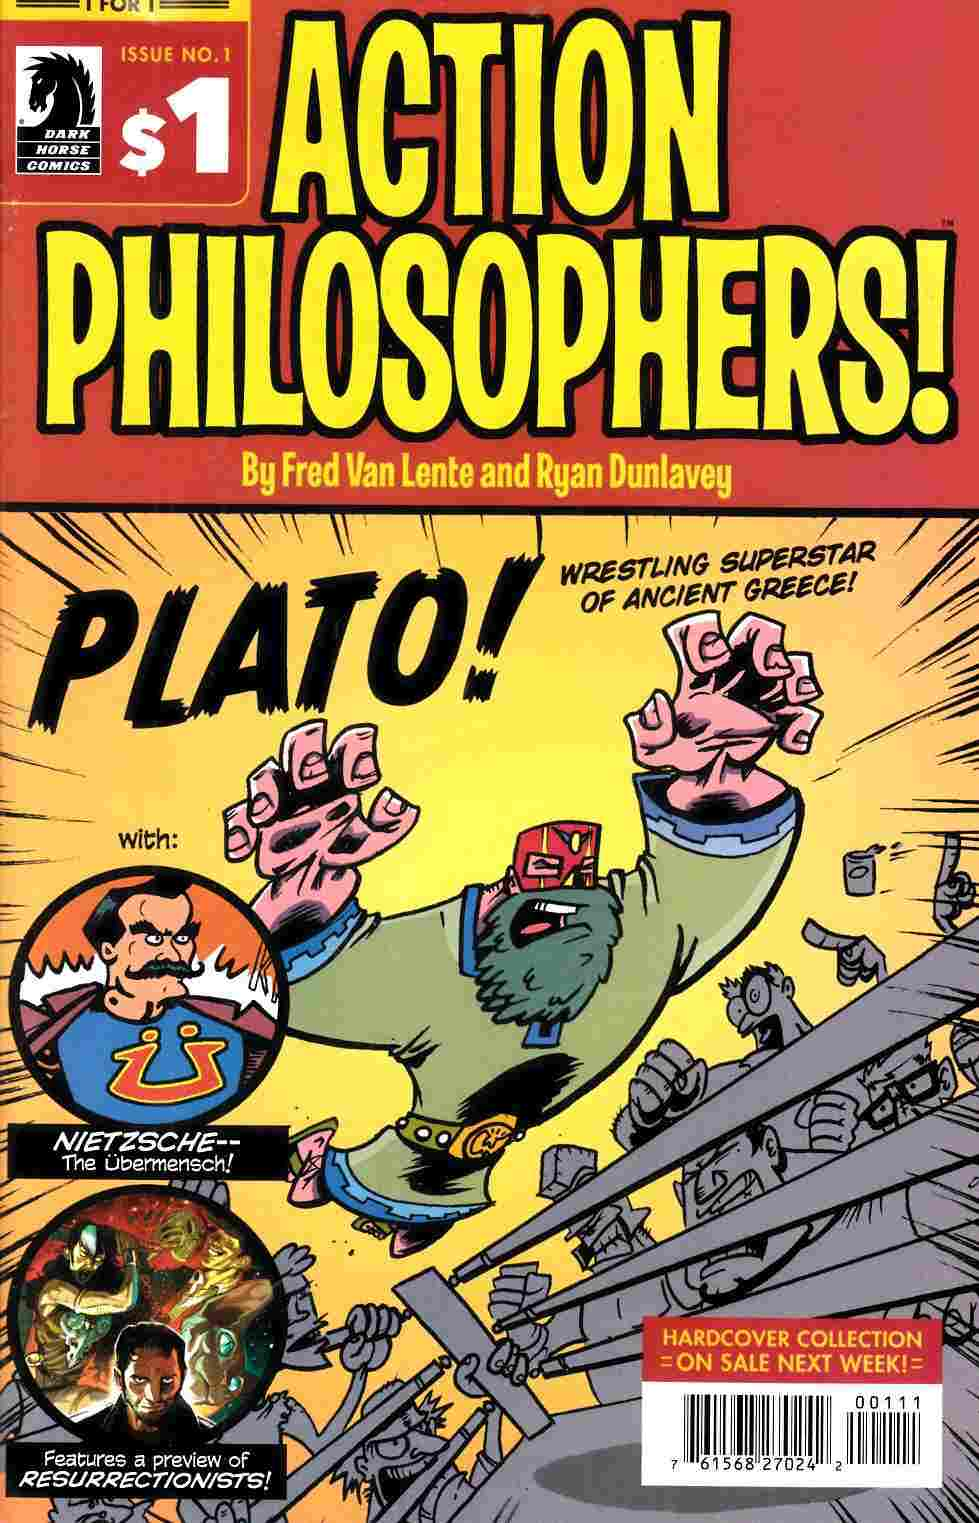 Action Philosophers #1 1 for $1 Edition [Comic] THUMBNAIL